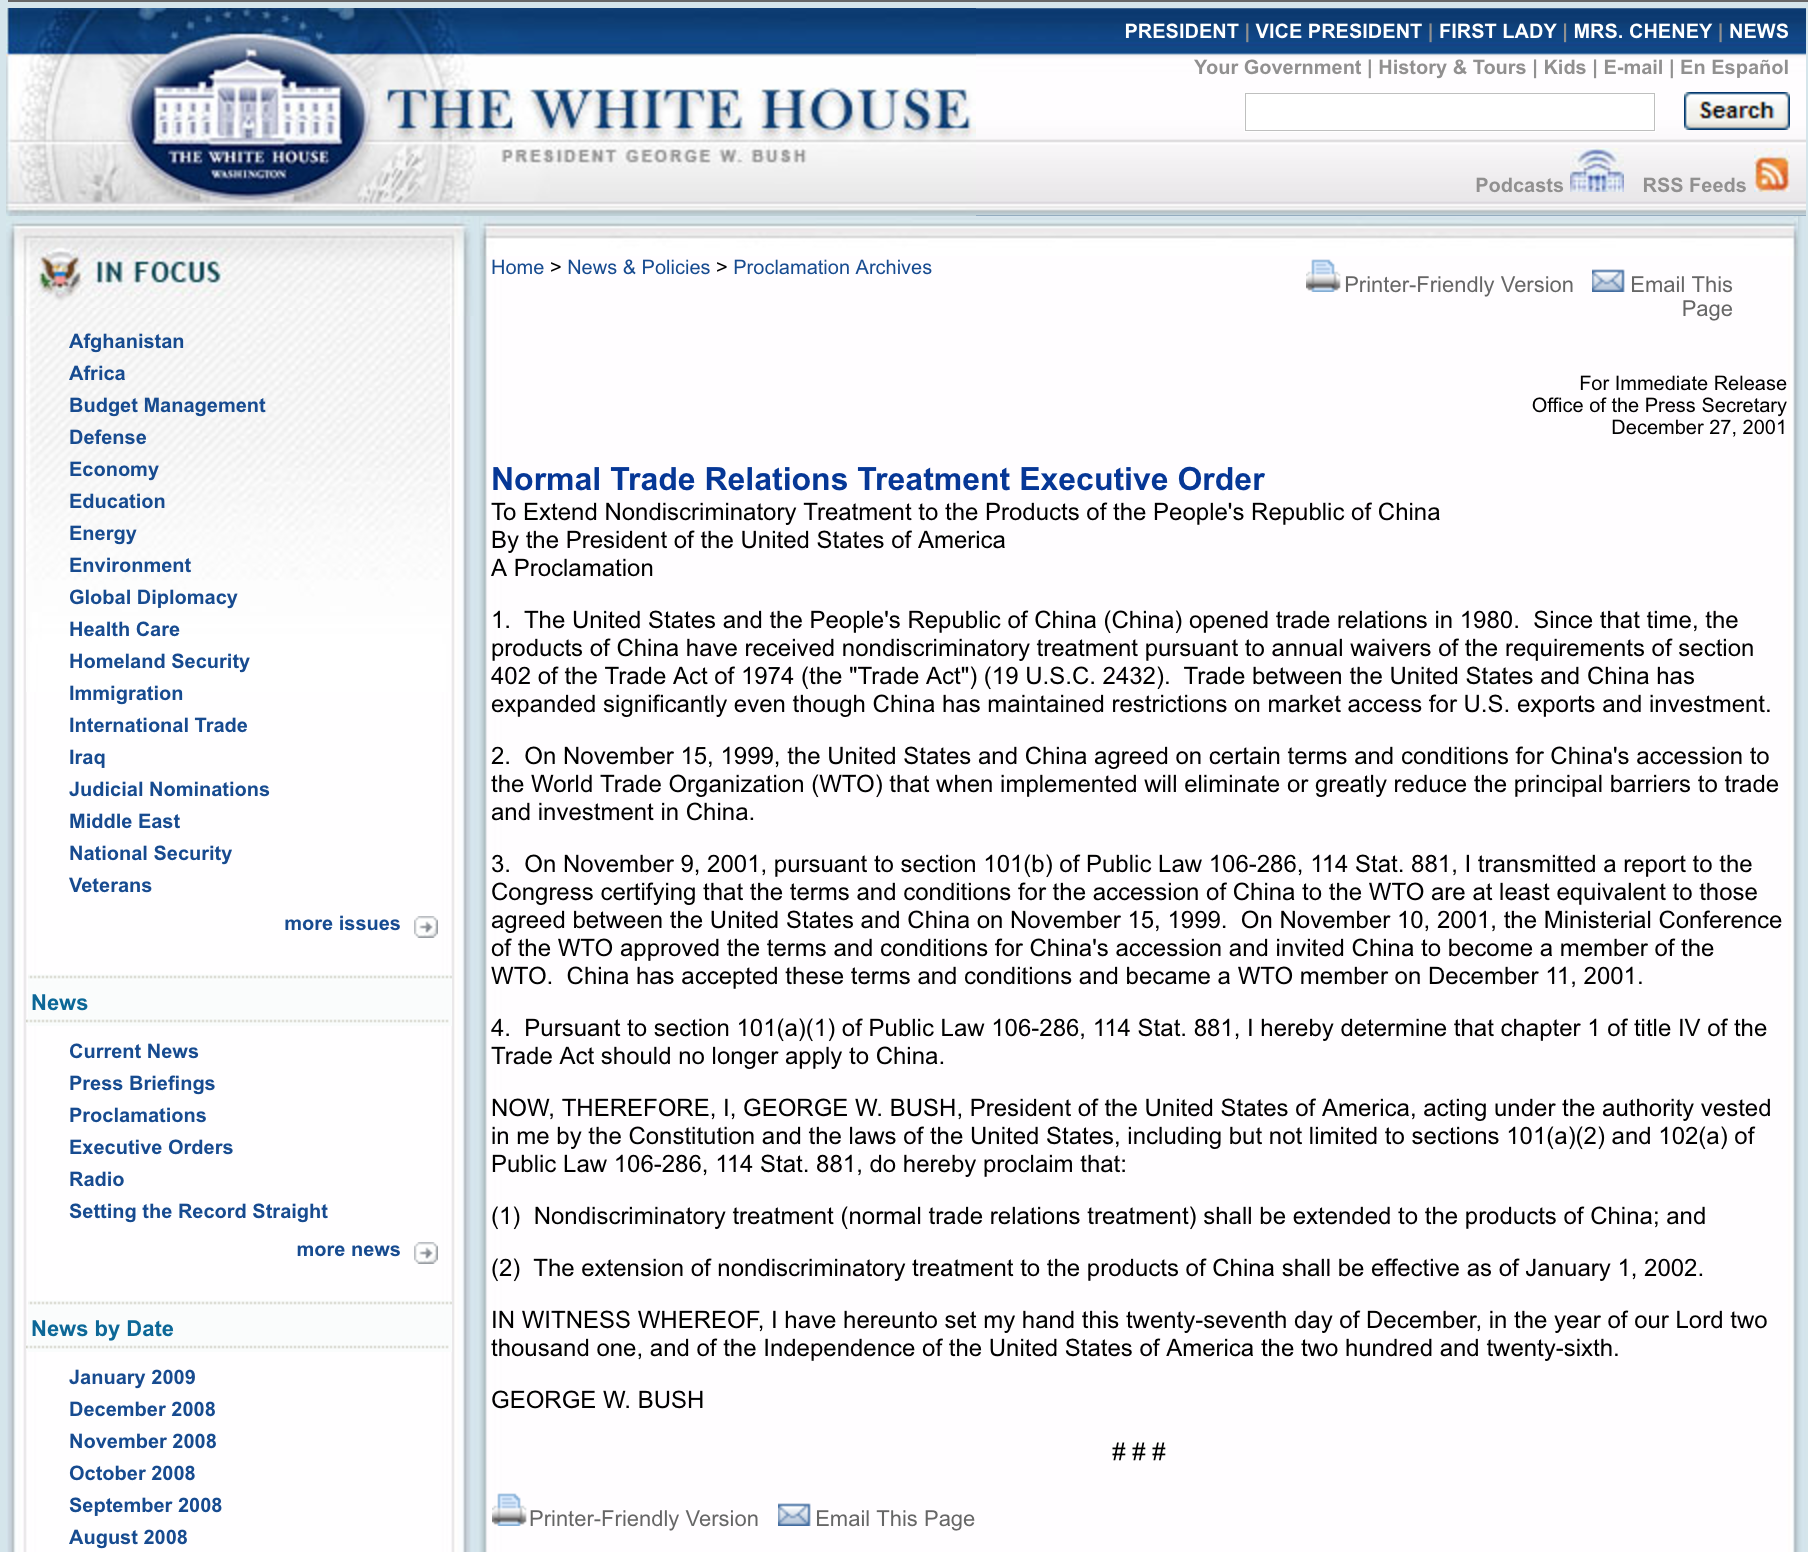 A Normal Executive Order to Extend Nondiscriminatory Treatment to the products of China